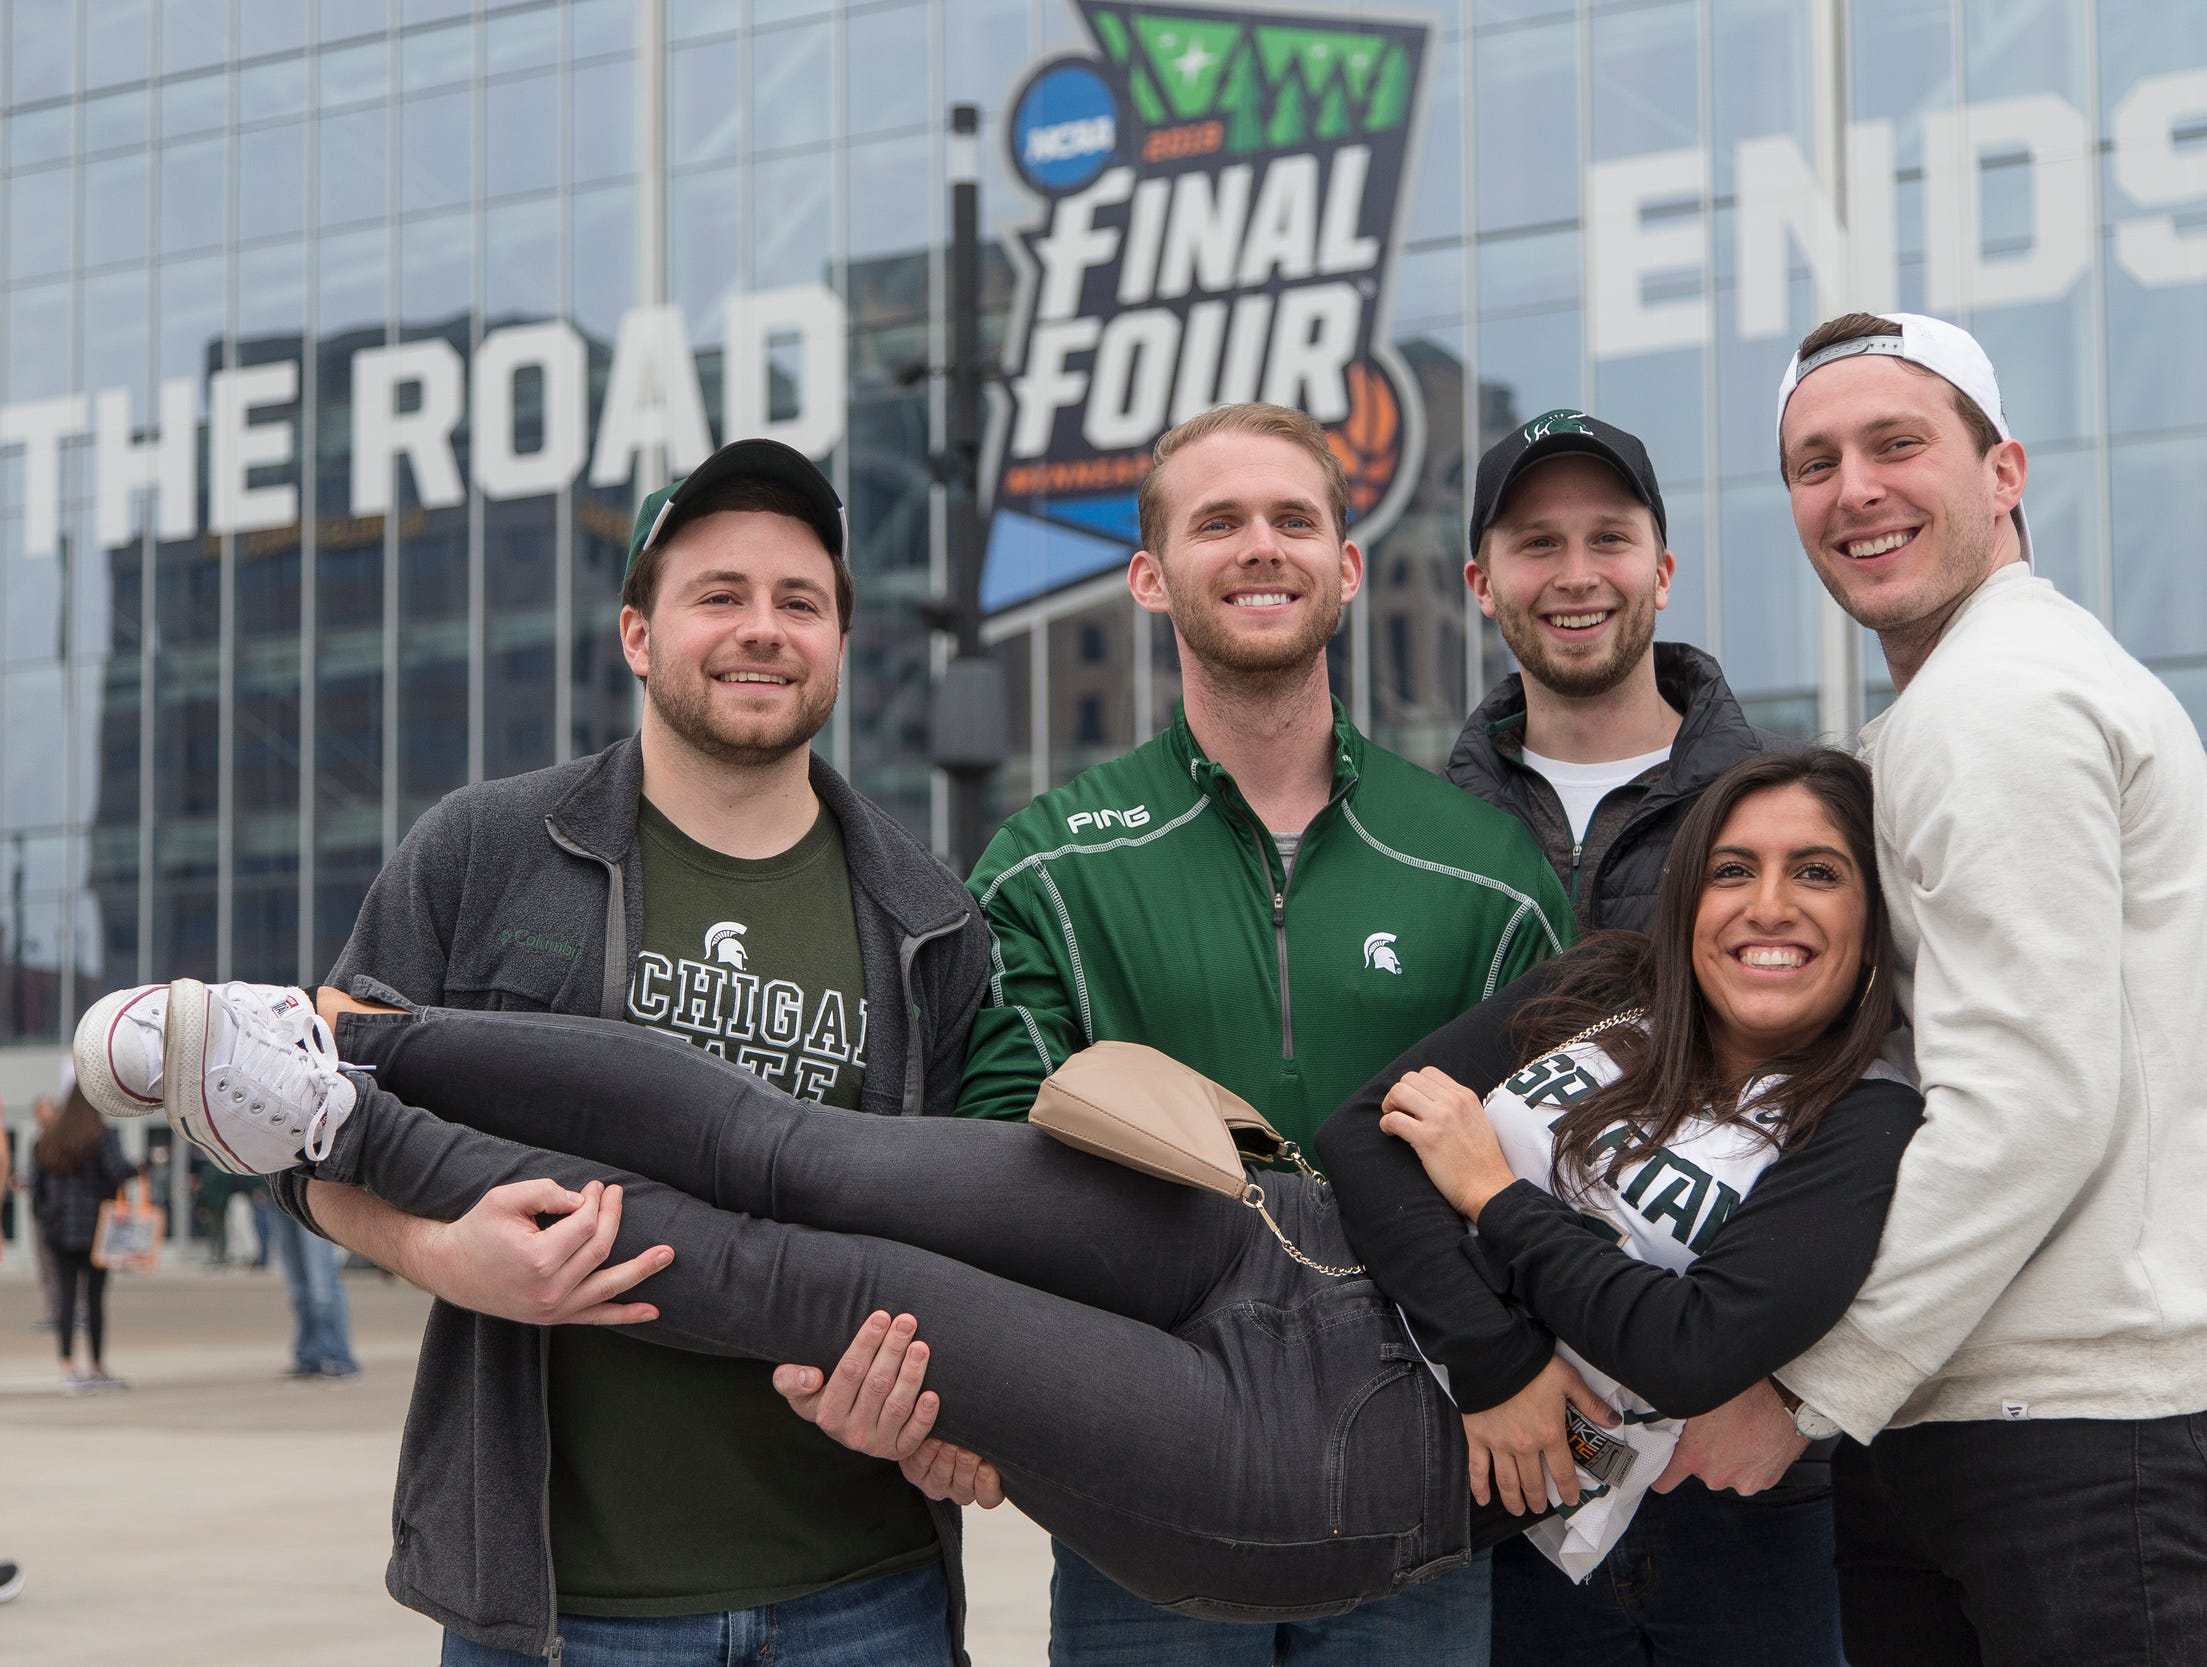 From left, Michigan State alumni Nick Gonyea of Detroit, Nick Druzinski of Detroit, Daniel Doroh of Chicago, Ill., John Venn and Kate Lieberman, both of Milwaukee, Wis., pose for a photo before the Final Four against Texas Tech at the U.S. Bank Stadium in Minneapolis, Saturday, April 6, 2019.